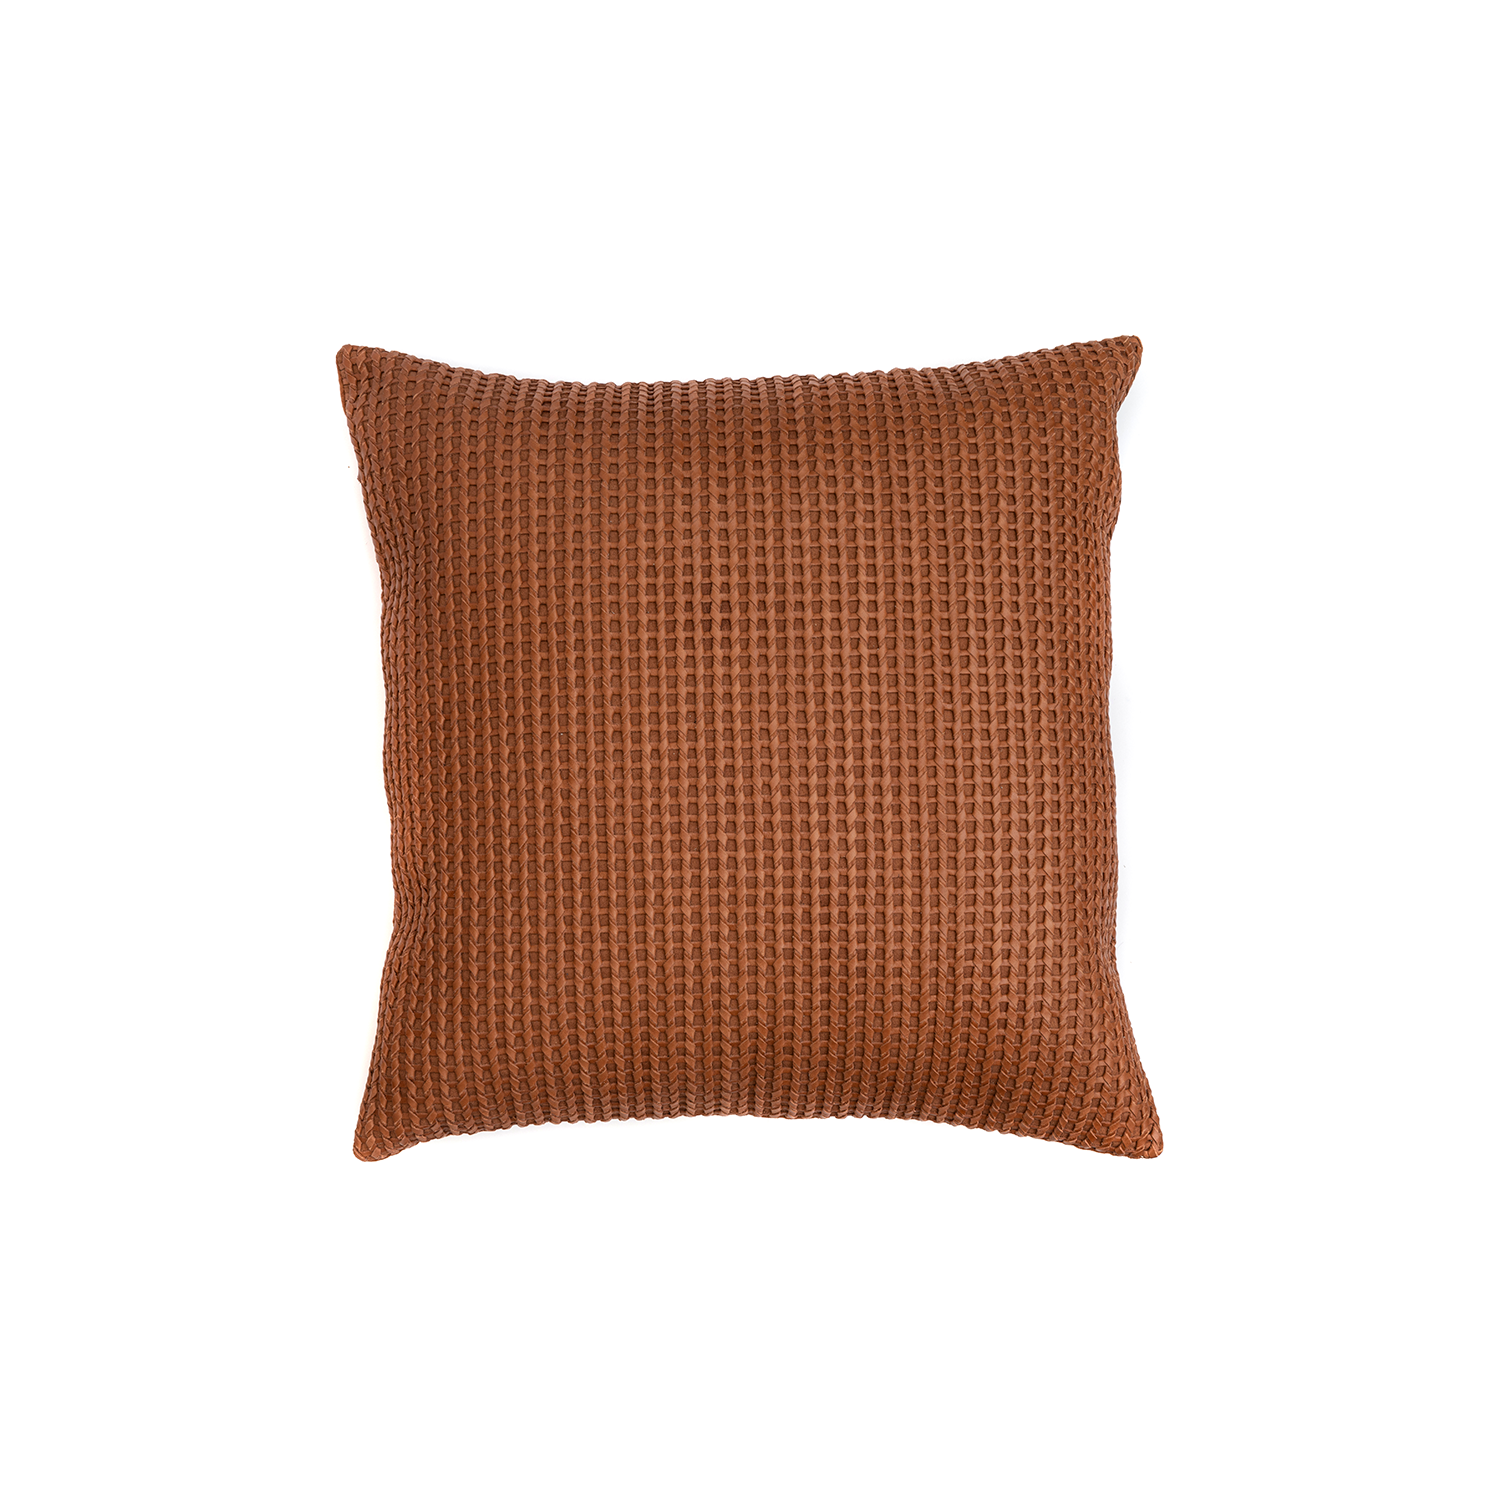 Lanca Woven Leather Cushion Square - The Lanca Woven Leather Cushion is designed to complement an ambient with a natural and sophisticated feeling. This cushion style is available in pleated leather or pleated suede leather. Elisa Atheniense woven handmade leather cushions are specially manufactured in Brazil using an exclusive treated leather that brings the soft feel touch to every single piece.   The front panel is handwoven in leather and the back panel is 100% Pes, made in Brazil.  The inner cushion is available in Hollow Fibre and European Duck Feathers, made in the UK.  Please enquire for more information and see colour chart for reference.   | Matter of Stuff